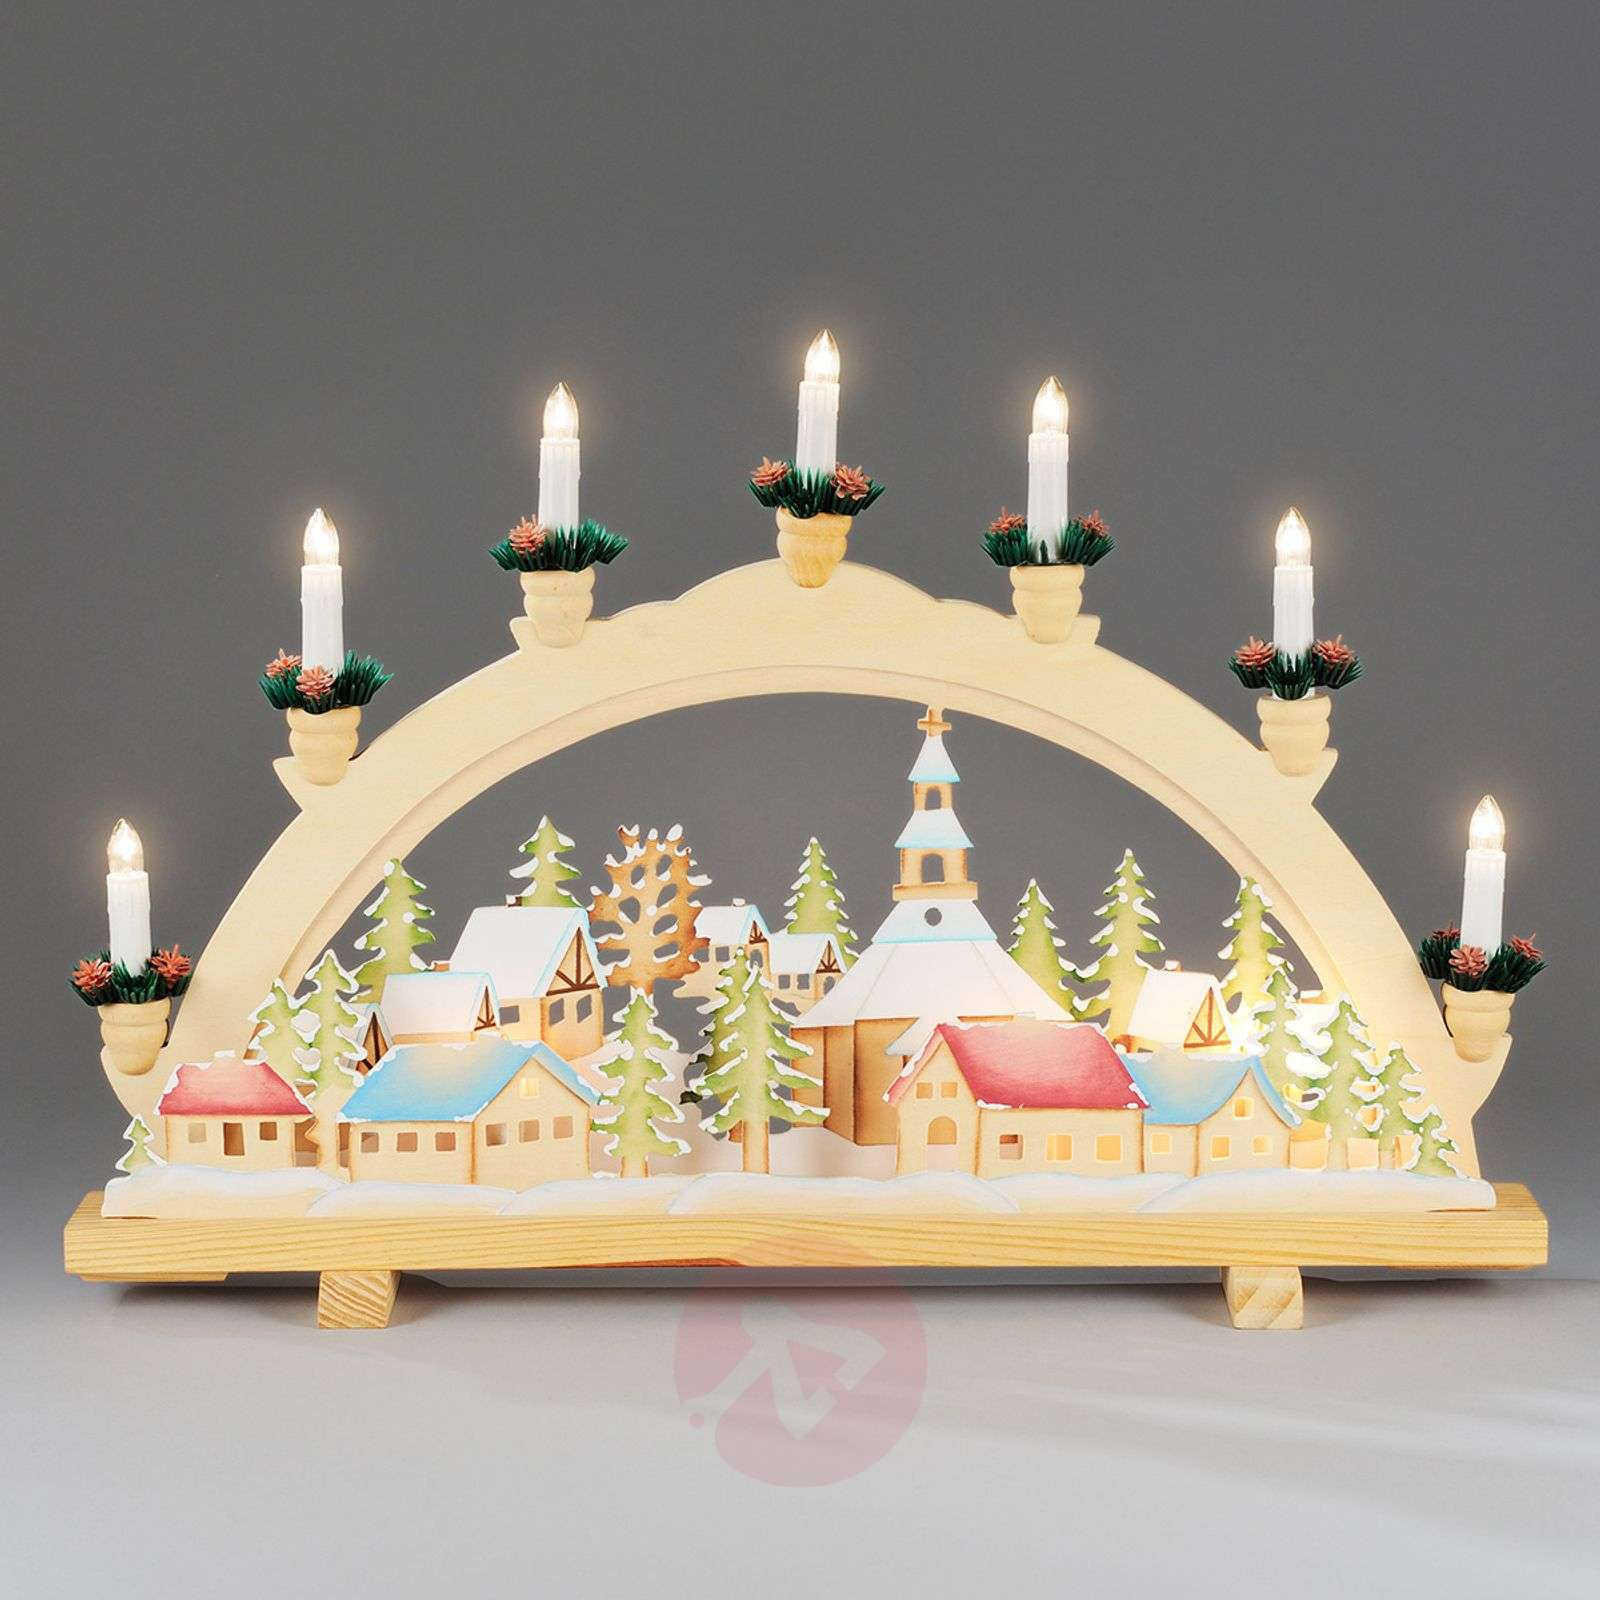 advent candle arch christmas village 57 cm. Black Bedroom Furniture Sets. Home Design Ideas